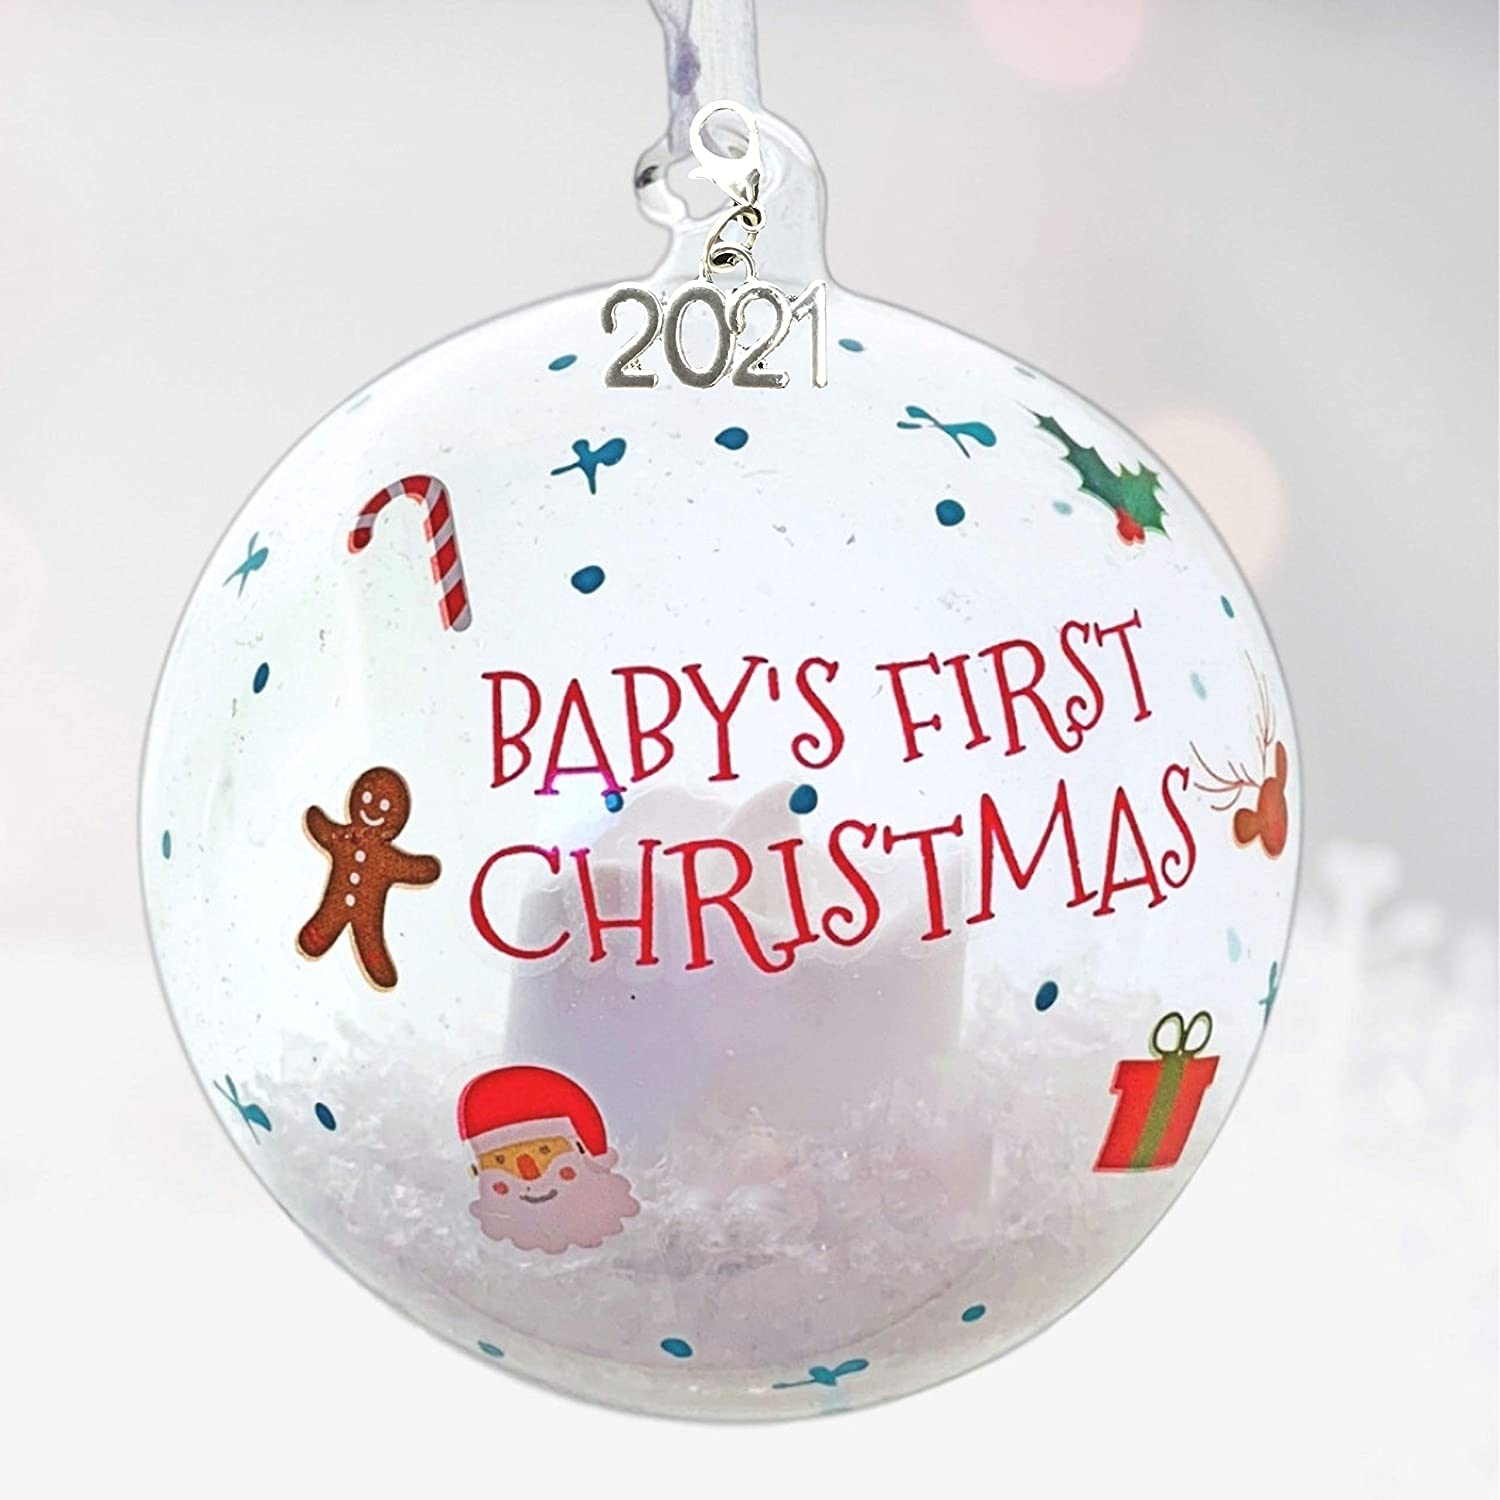 BANBERRY DESIGNS 2021 Baby's First Christmas Ornament Globe - Collectible LED Lighted Glass Ball Xmas Ornament - New Baby Gift